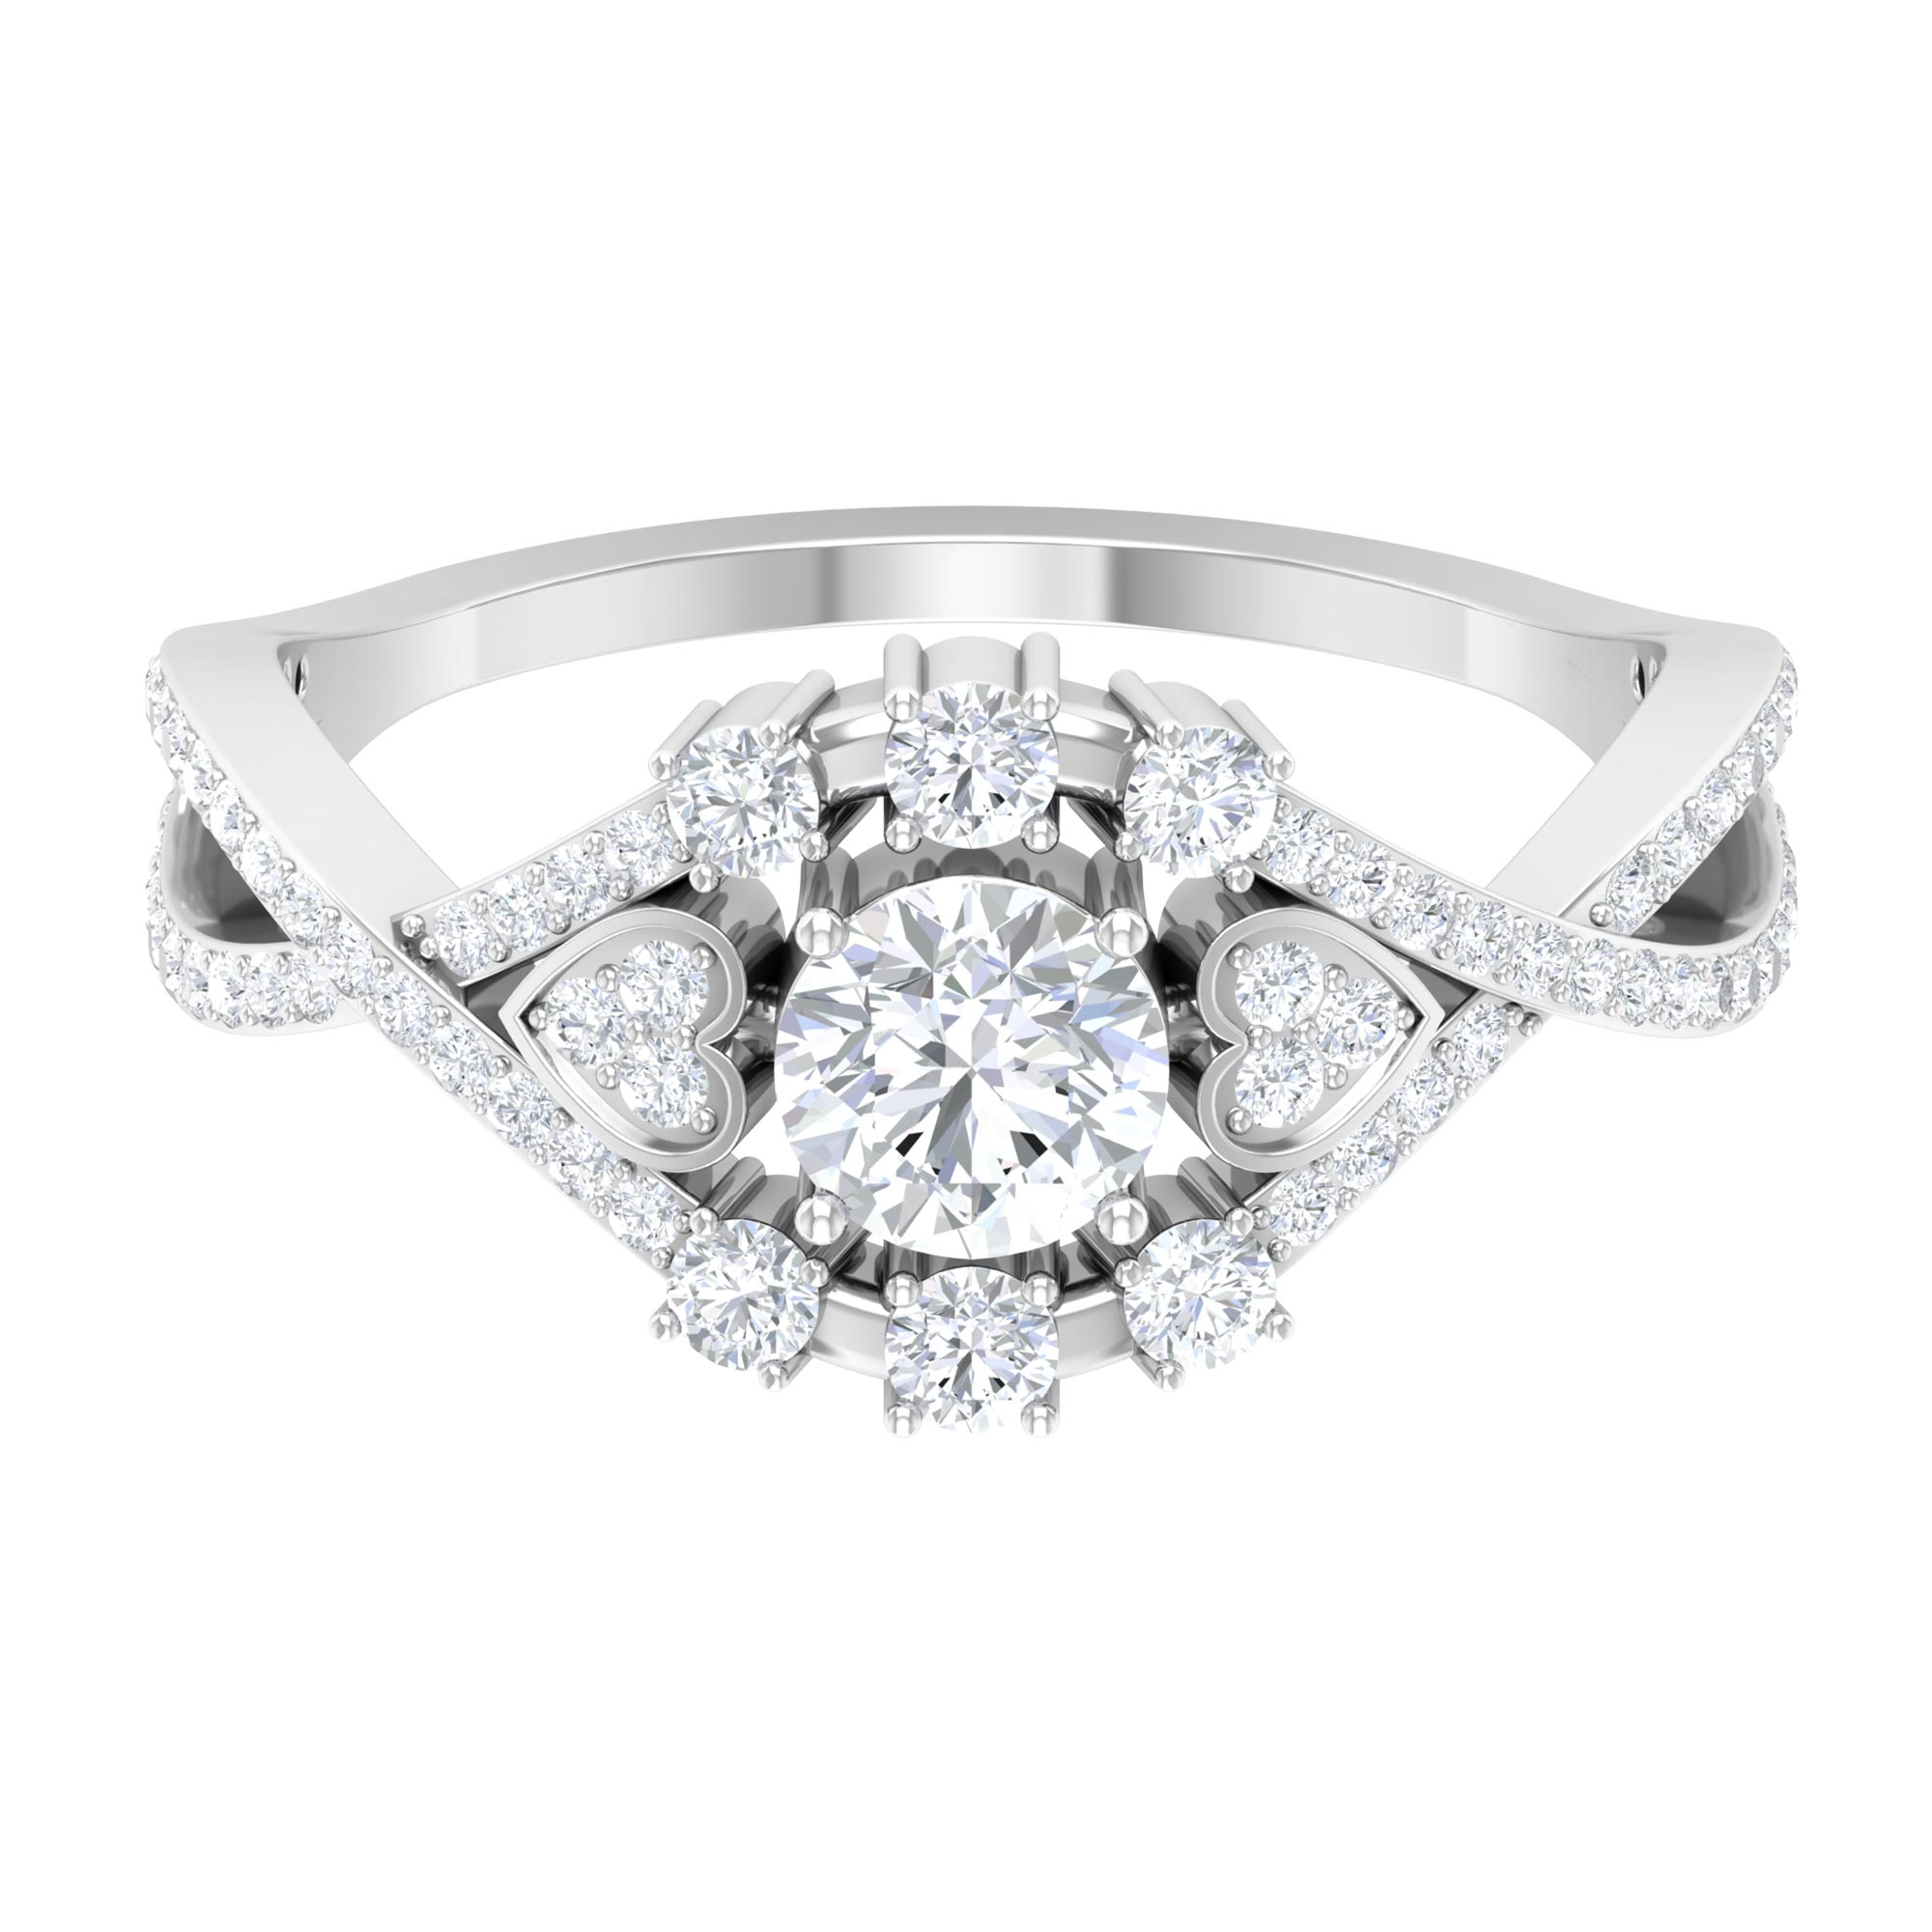 1.25 CT Diamond Engagement Ring with Crossover Shank in Prong Setting